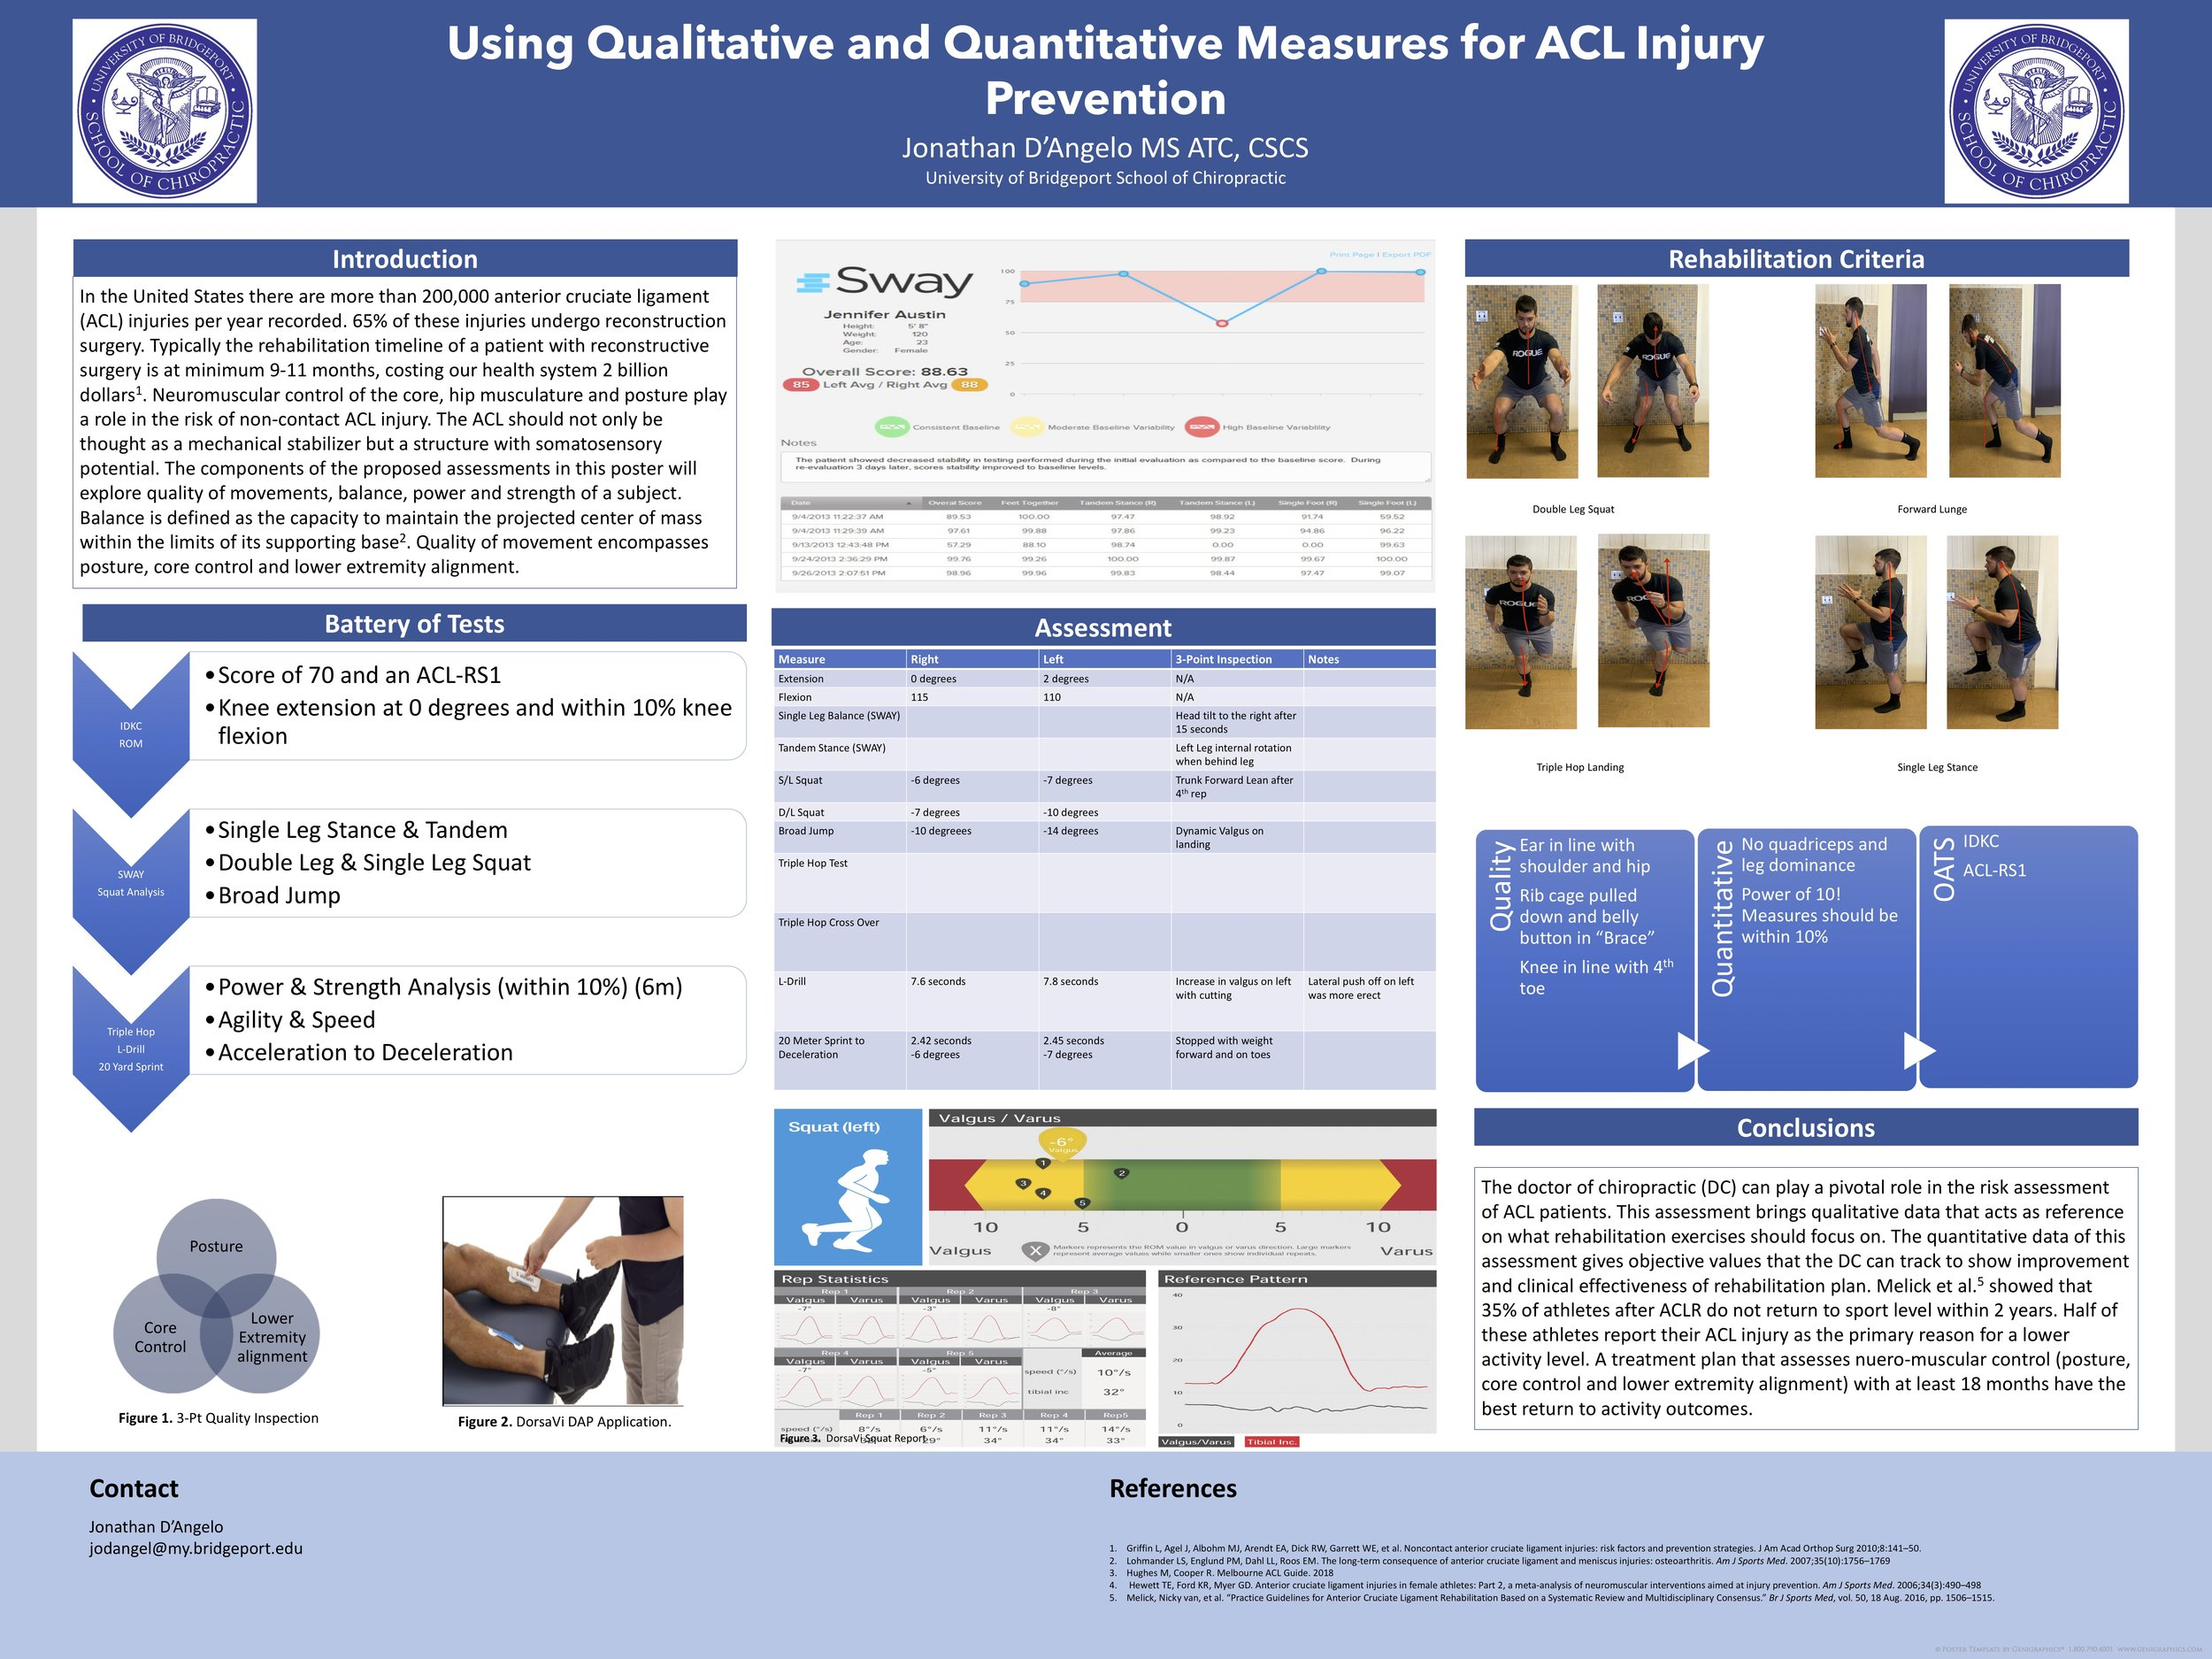 Using Qualitative and Quantitative Measures for ACL Injury Prevention - Jonathan DAngelo